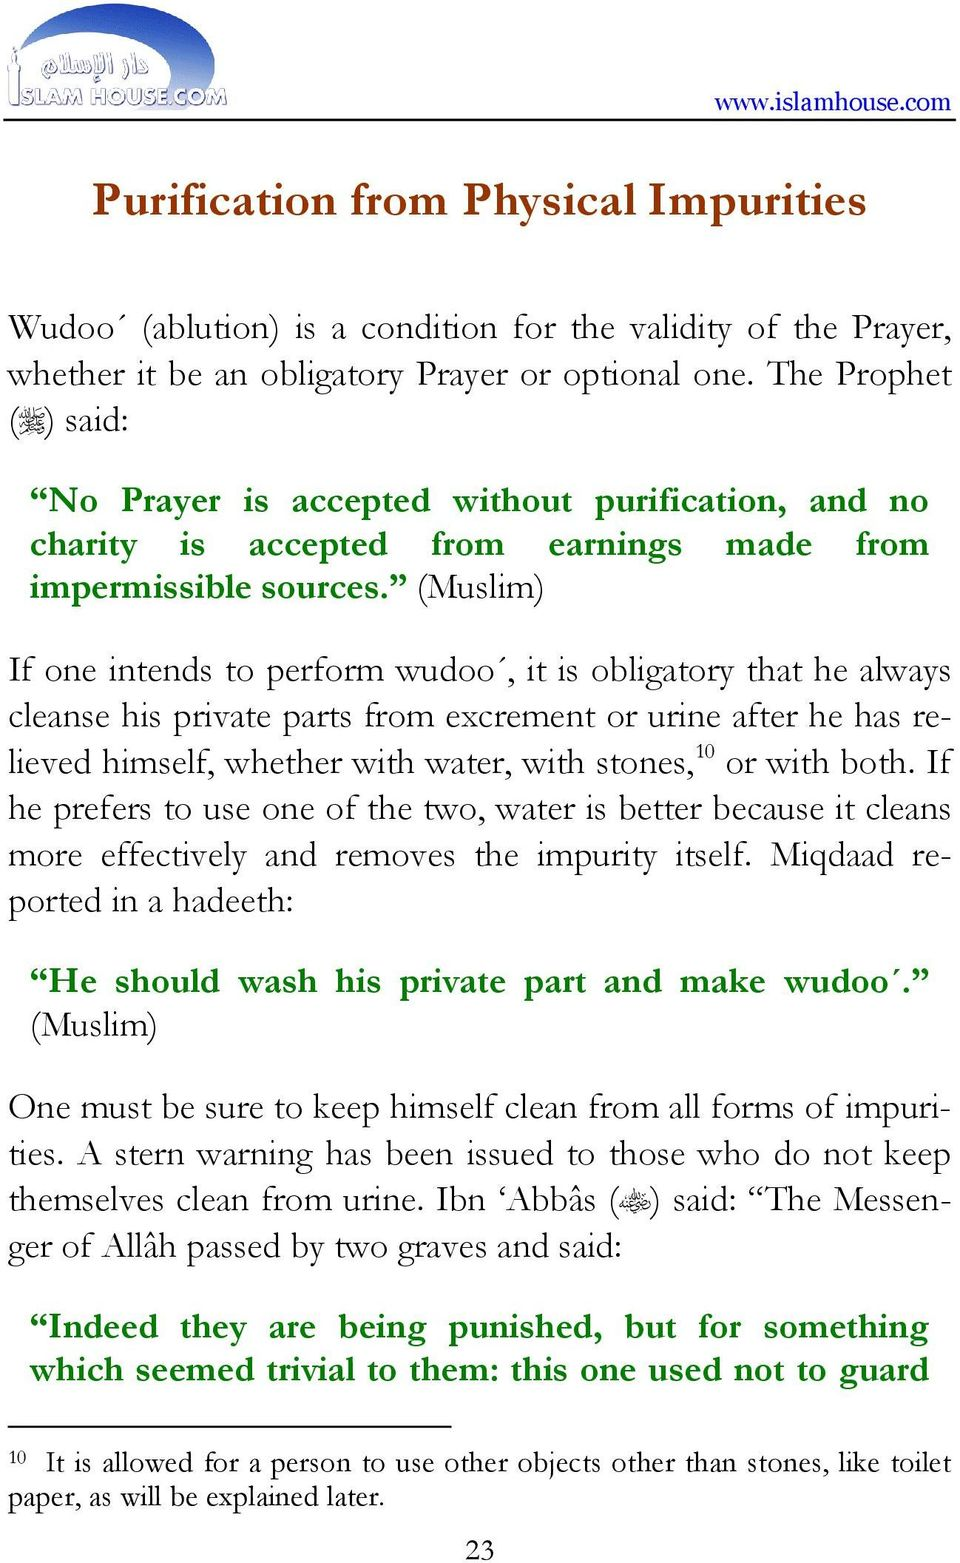 (Muslim) If one intends to perform wudoo, it is obligatory that he always cleanse his private parts from excrement or urine after he has relieved himself, whether with water, with stones, 10 or with